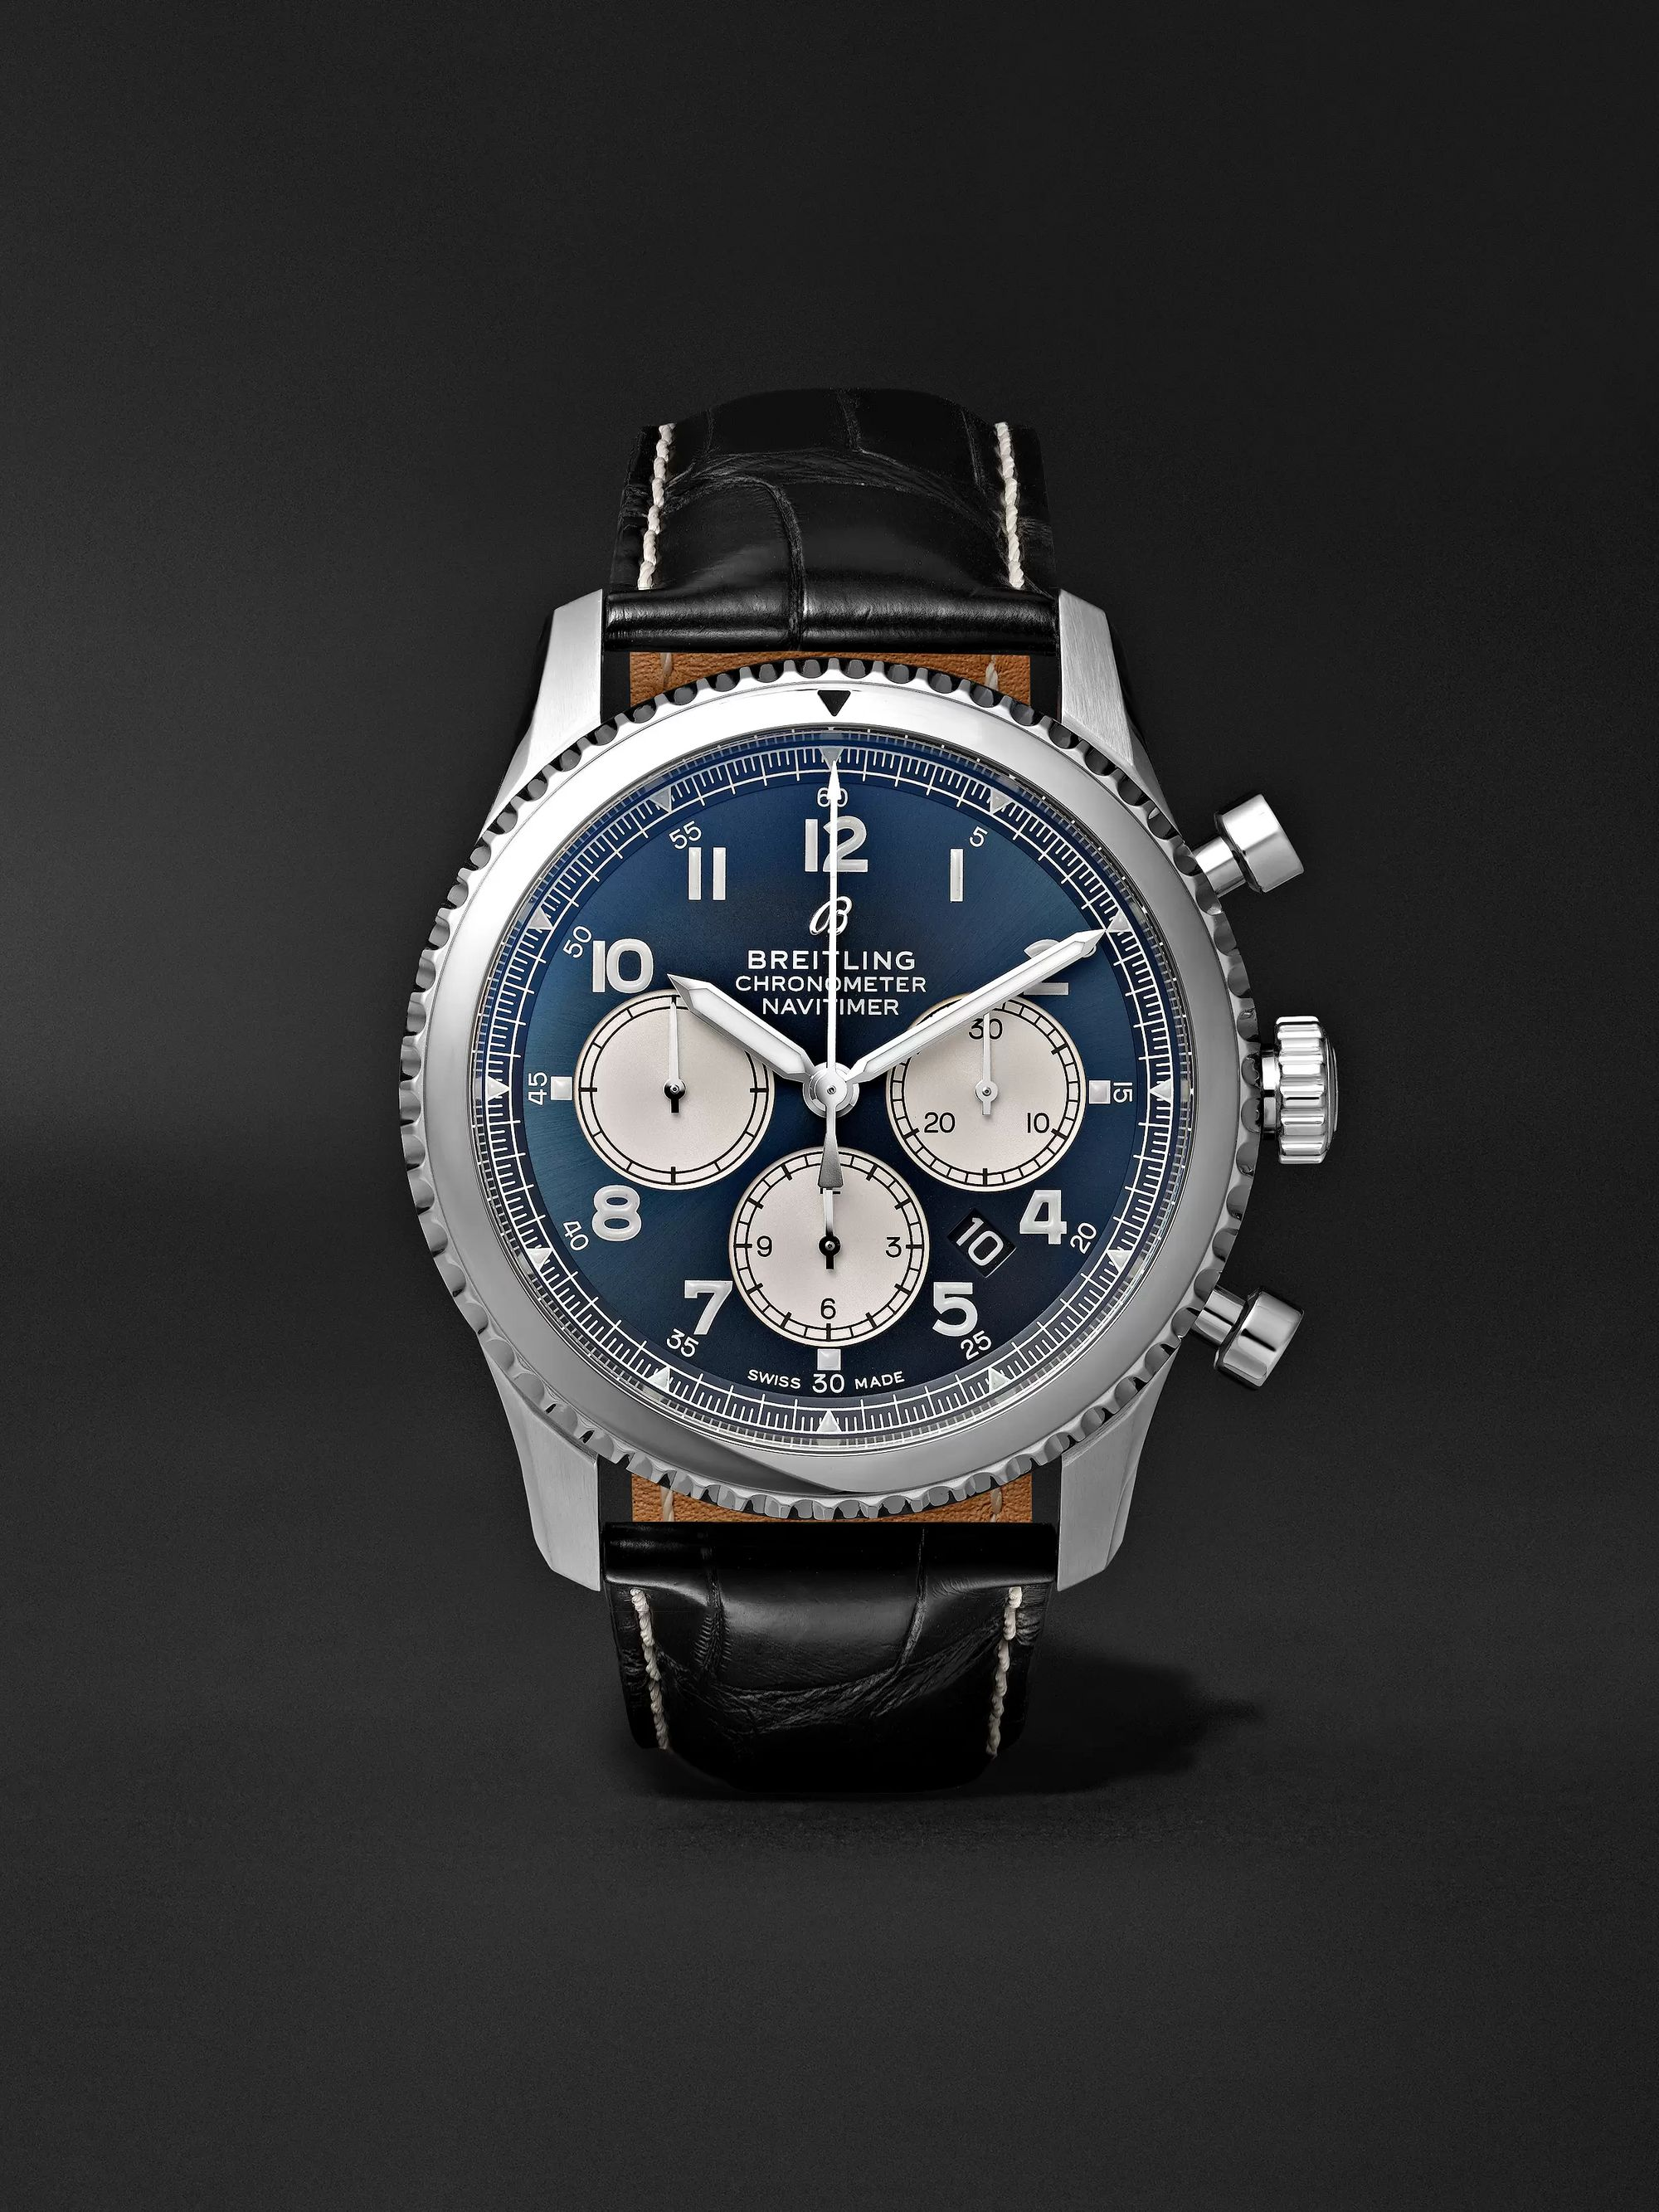 Breitling Navitimer 8 B01 Chronograph 43mm Stainless Steel and Alligator Watch, Ref. No. AB0117131C1P1